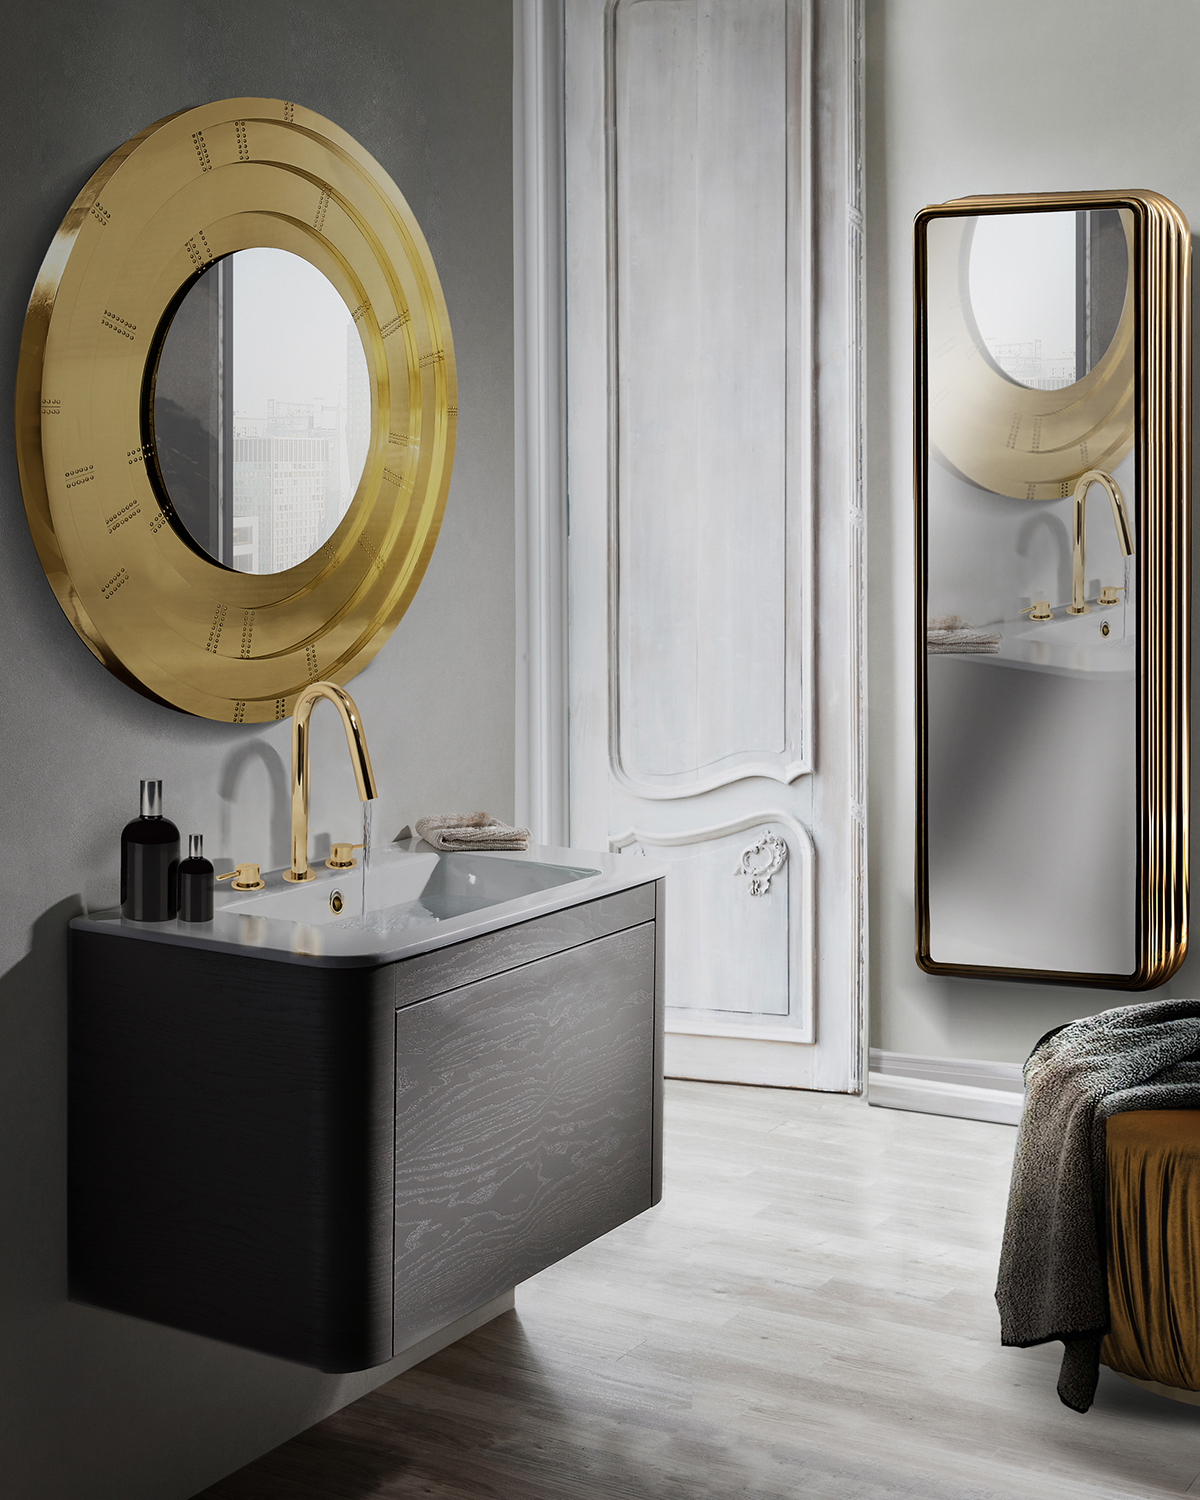 bathroom, golden bathroom, gold,maison valentina, bathub, mirror, rug, tap, bathroom decoration, bathroom decor  5 Ideas to Add a Touch of Gold to Your Bathroom 5 ideas to add a touch of gold to your bathroom 7